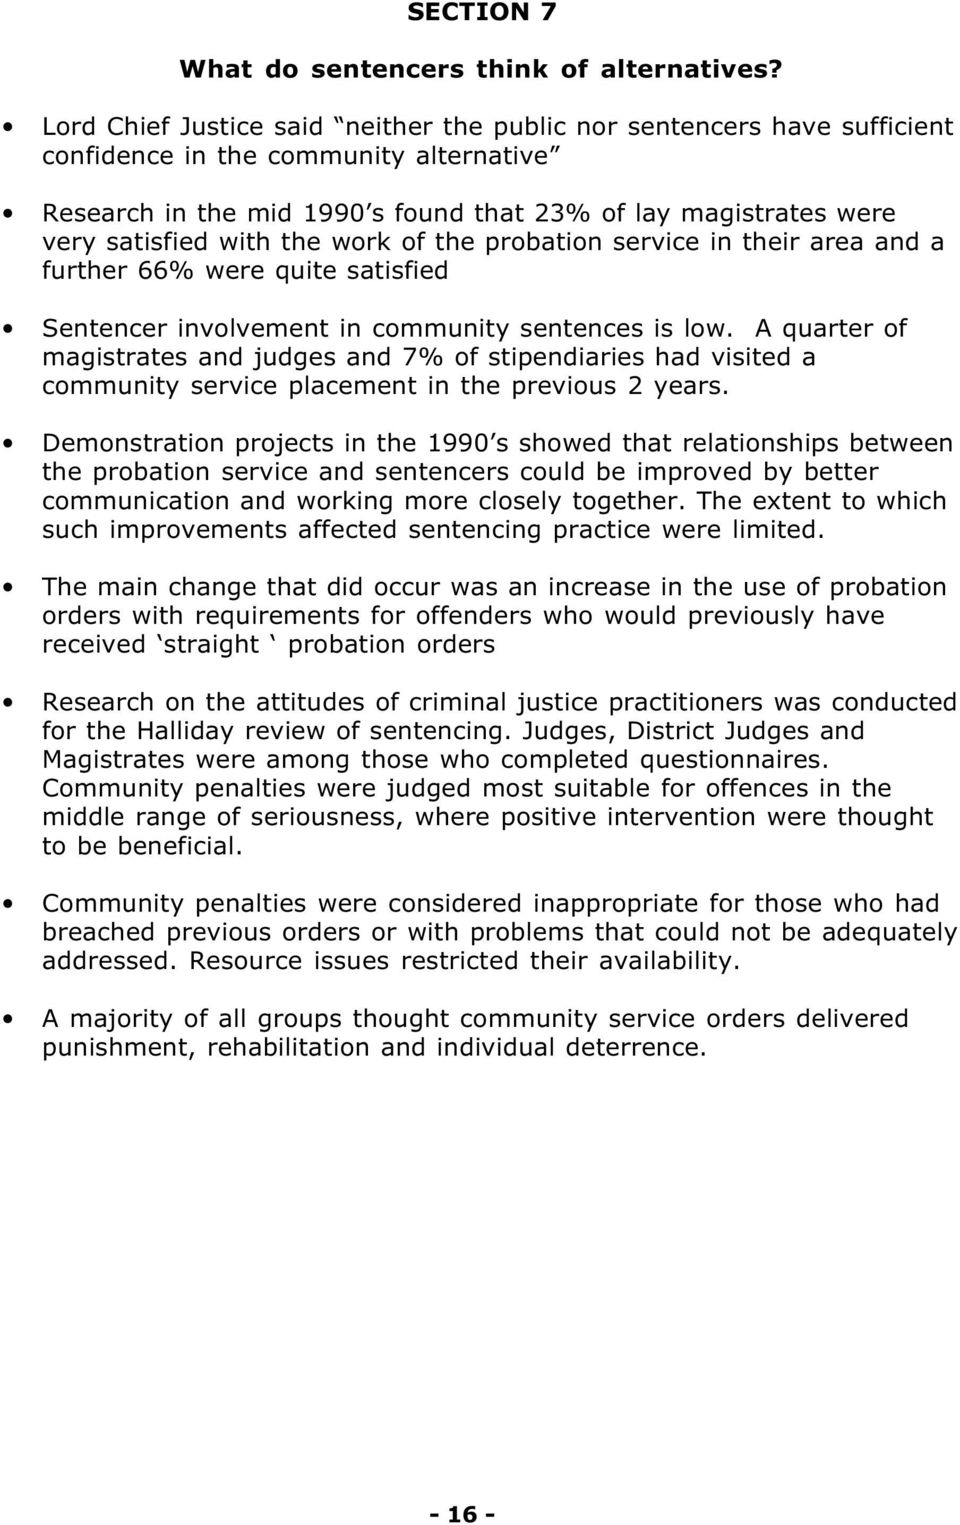 the work of the probation service in their area and a further 66% were quite satisfied Sentencer involvement in community sentences is low.